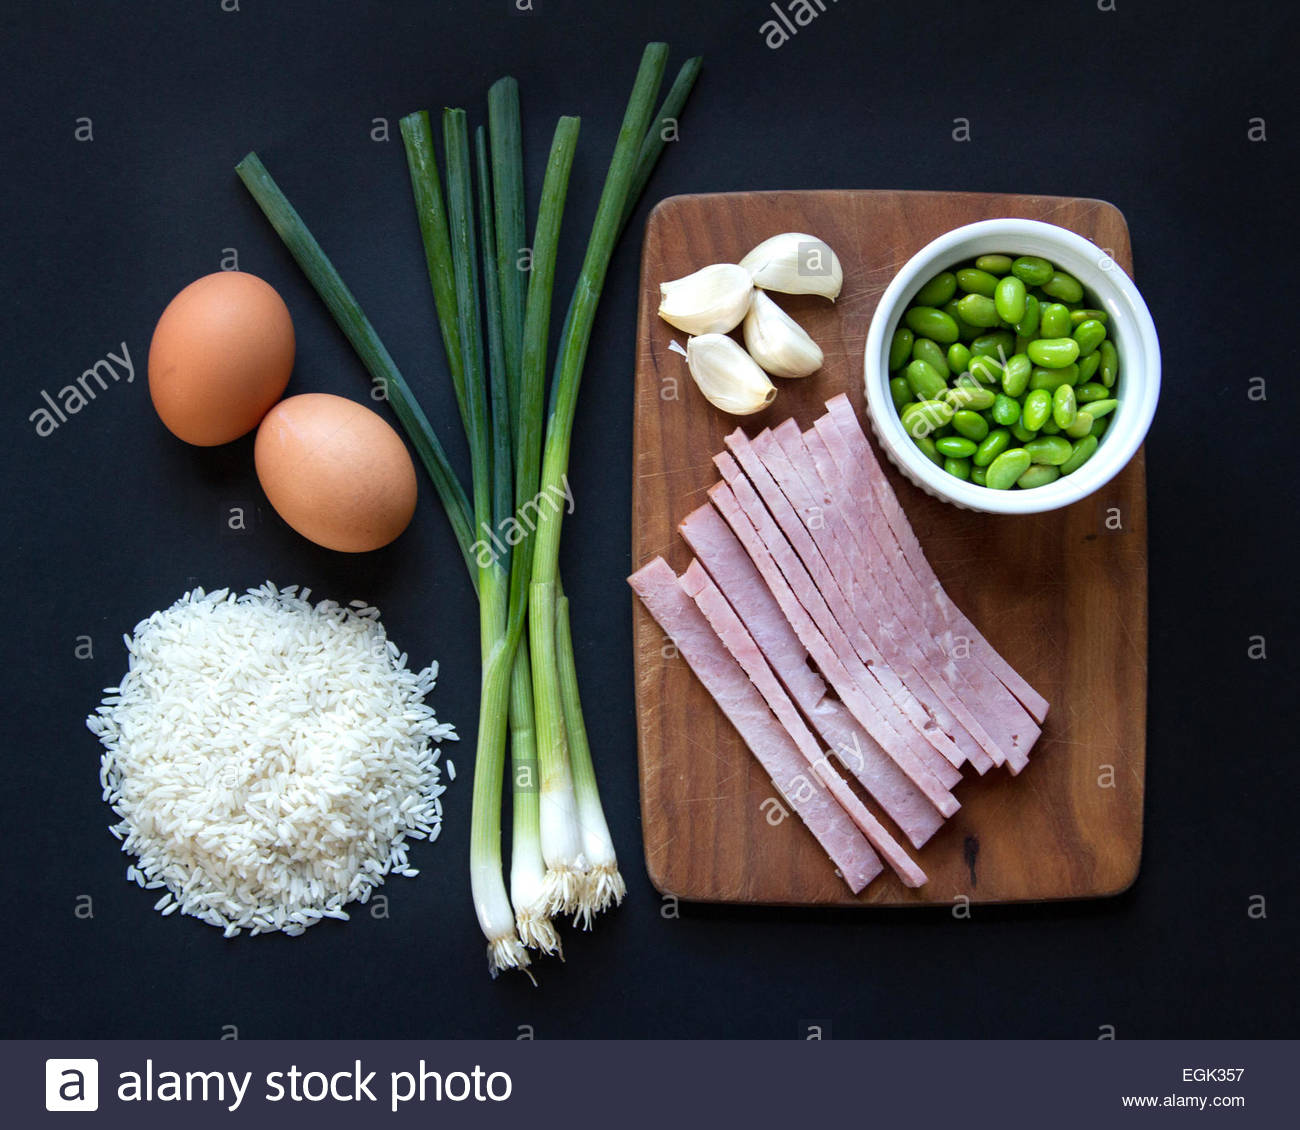 Overhead view of food ingredients on black background - Stock Image